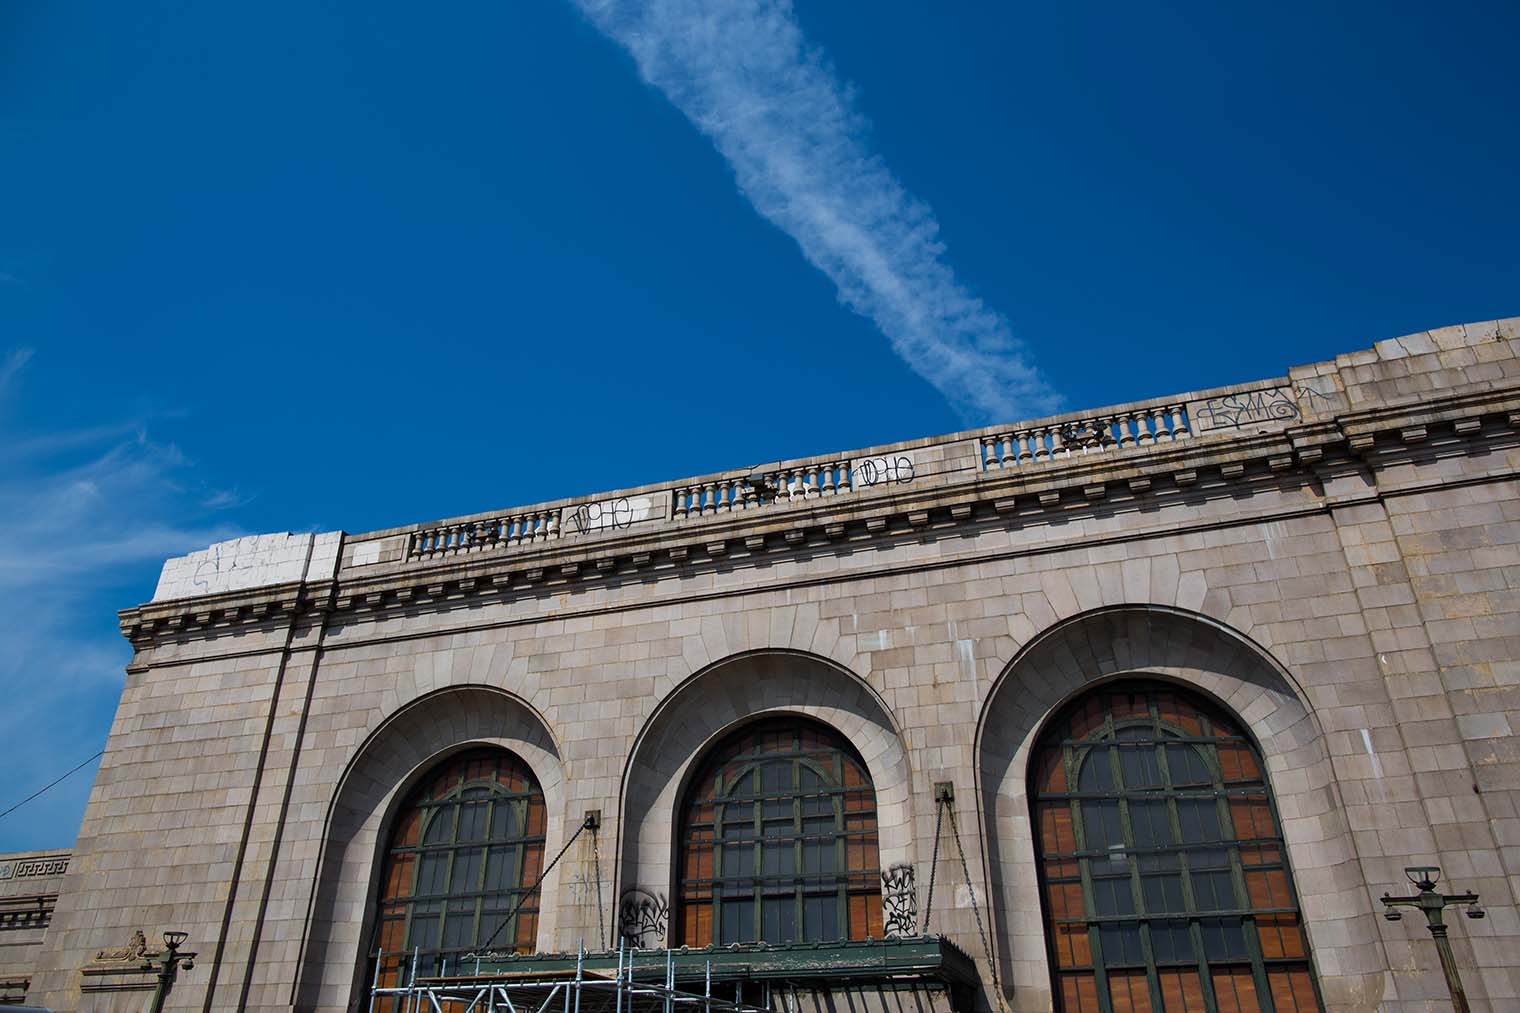 16th Street Station Wedding Venue